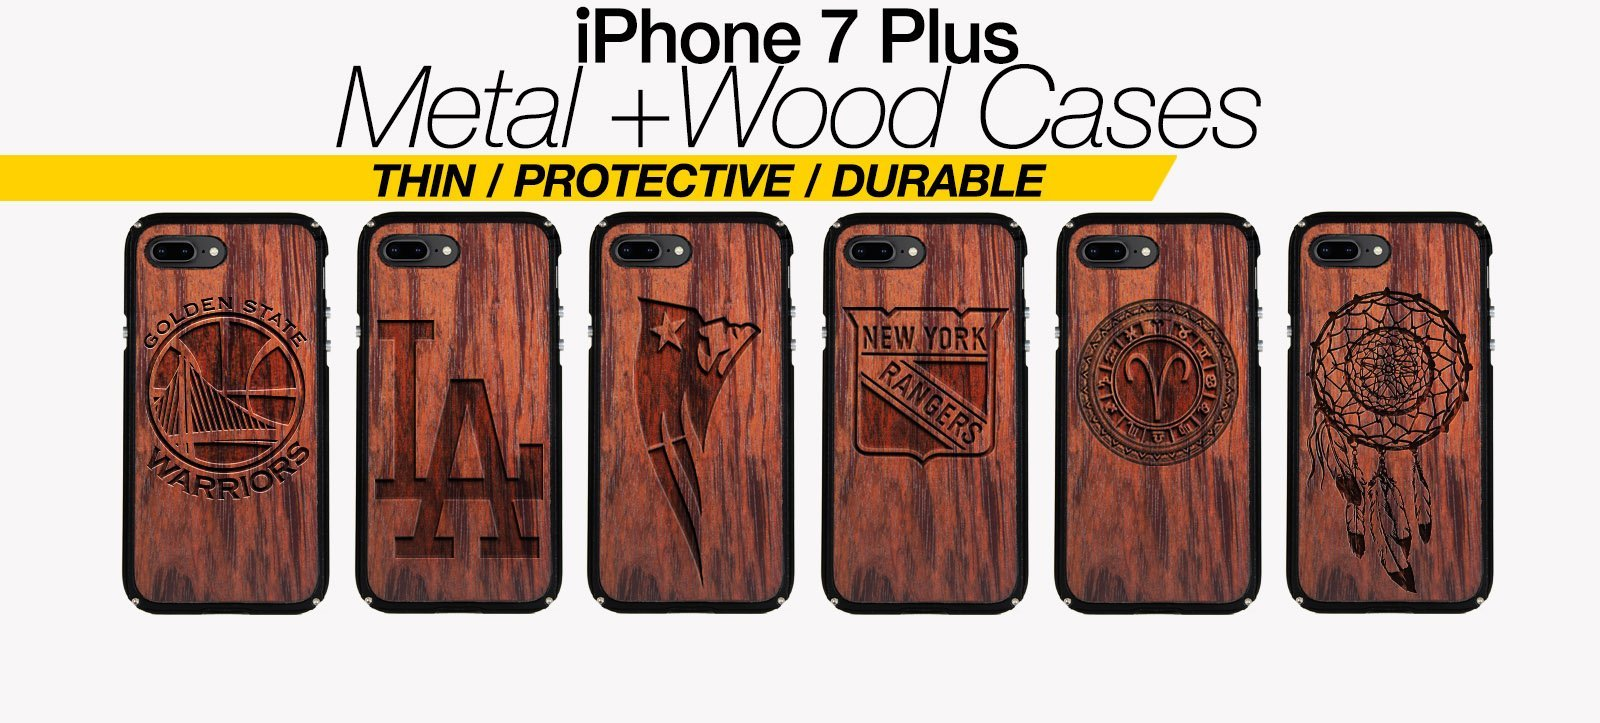 Wood And Metal iPhone 7 Plus Cases Best Wood And Metal iPhone 7 Plus Covers Thin Protective Eco Friendly